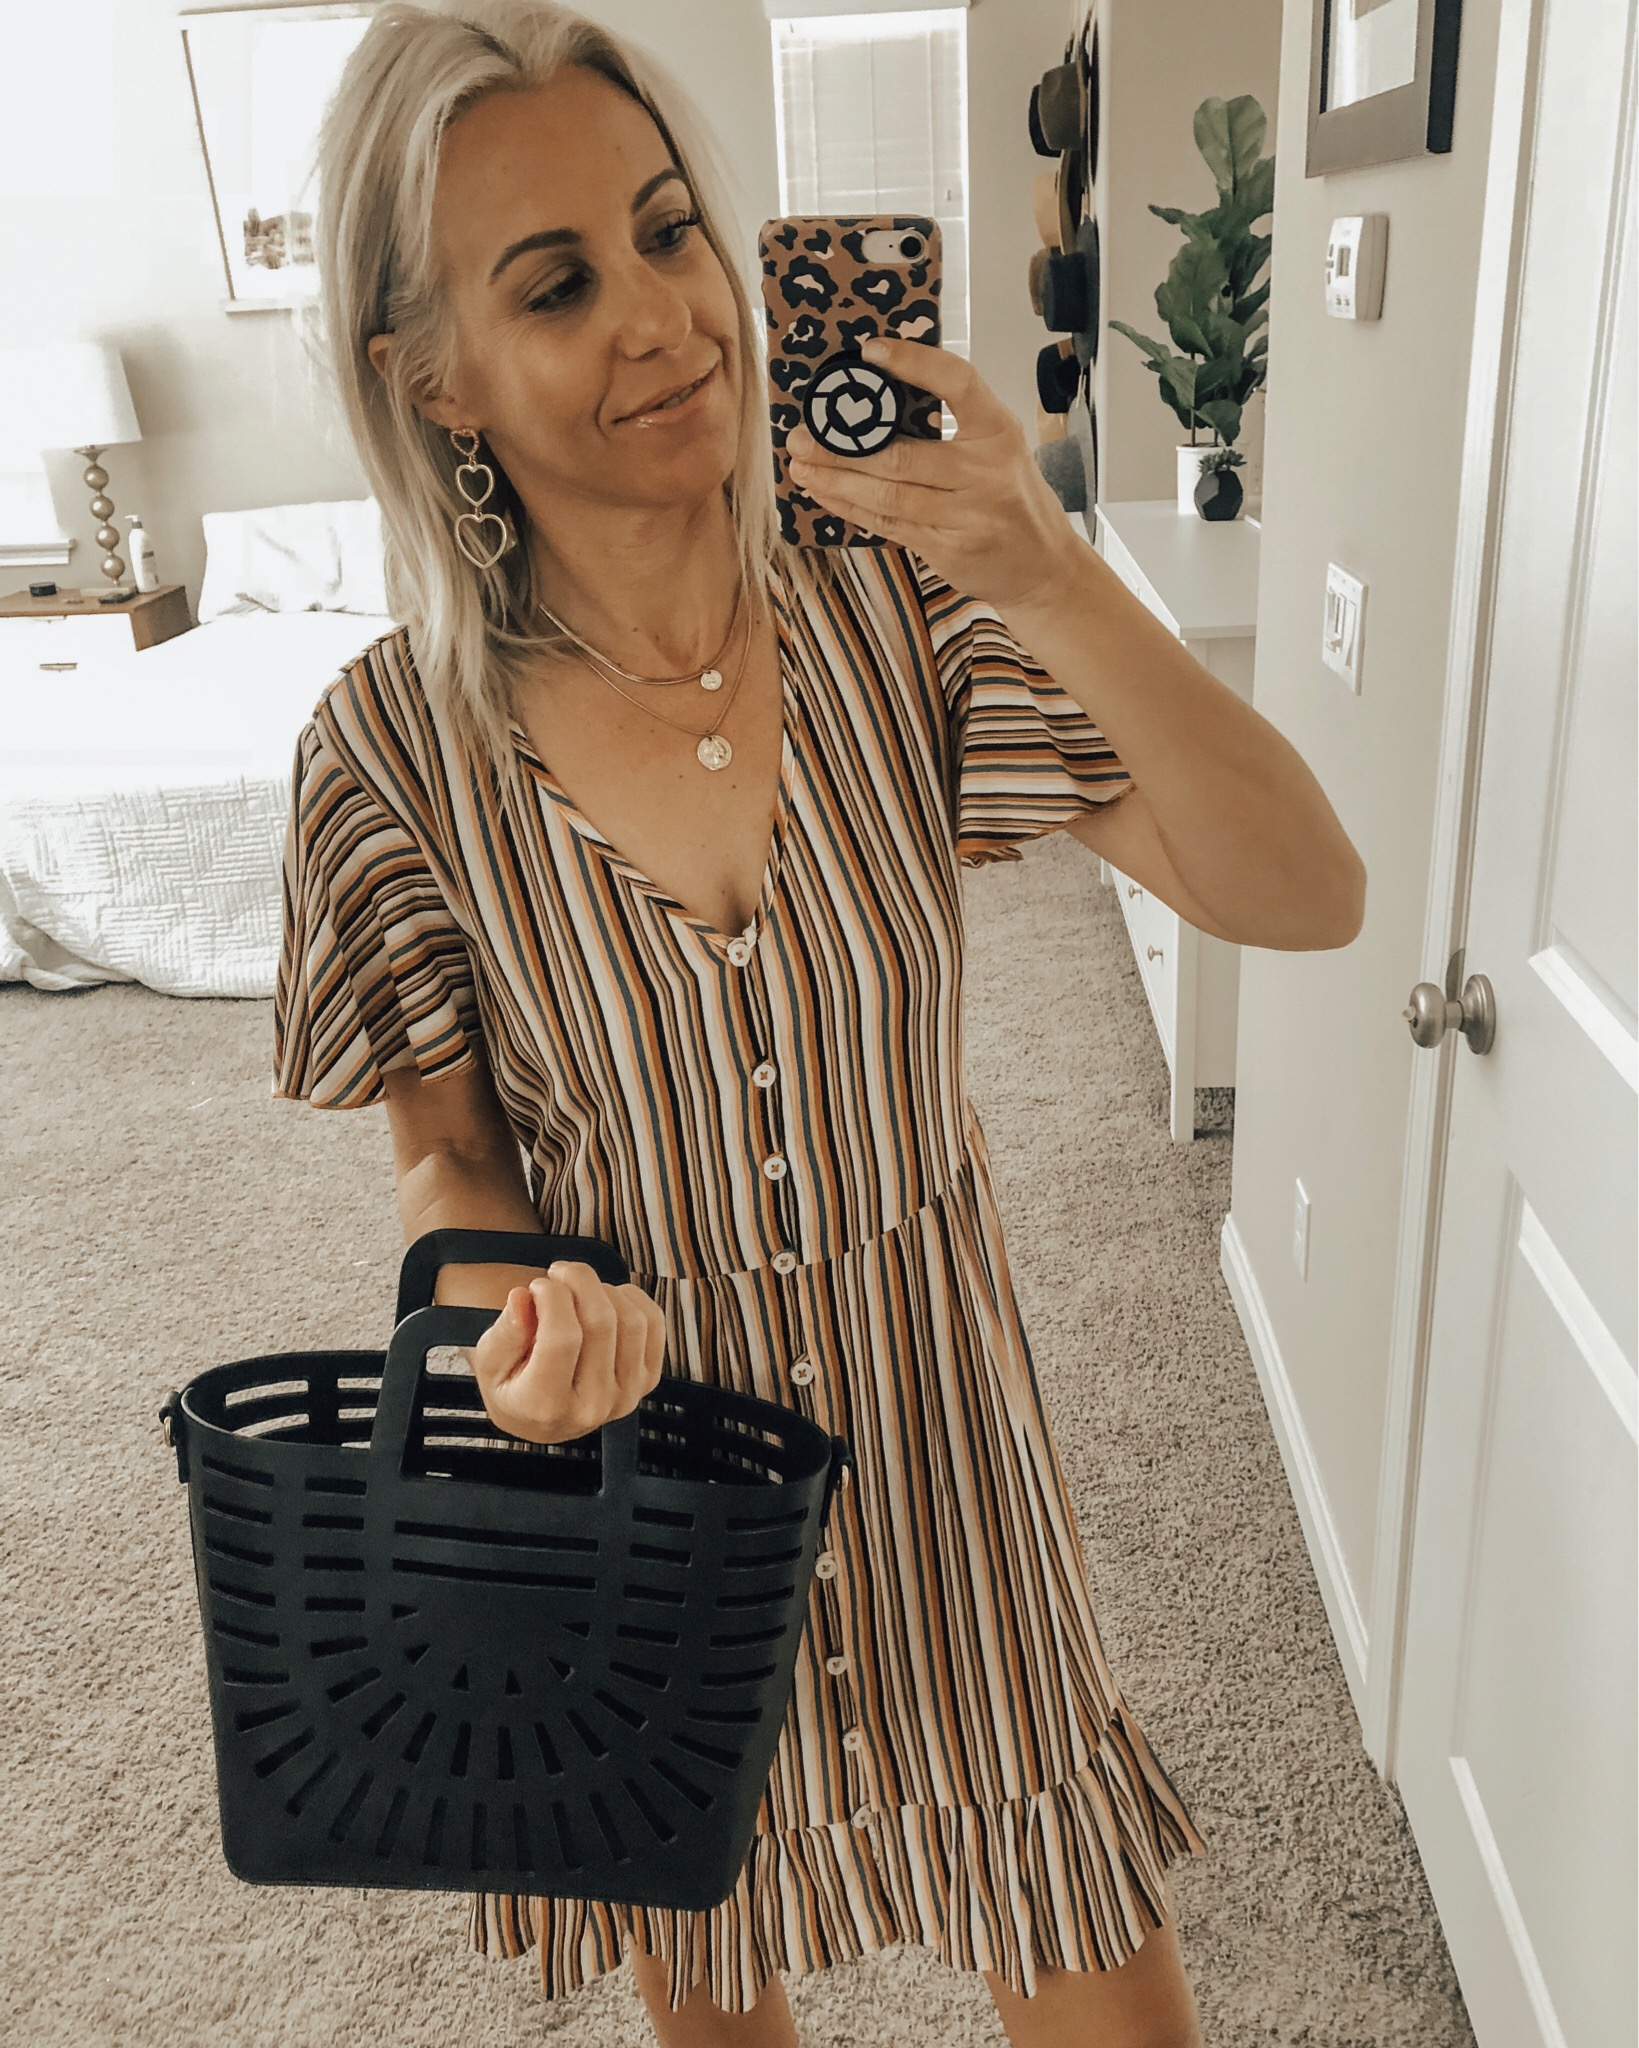 MARCH TOP 10- Jaclyn De Leon Style + My top ten selling items from the month of March are everything from the coziest jumpsuit, jewelry travel case, swim suit cover up, espadrilles and of course the cutest striped dress. Most of the favorites were from Target, Amazon, DSW and Abercrombie!